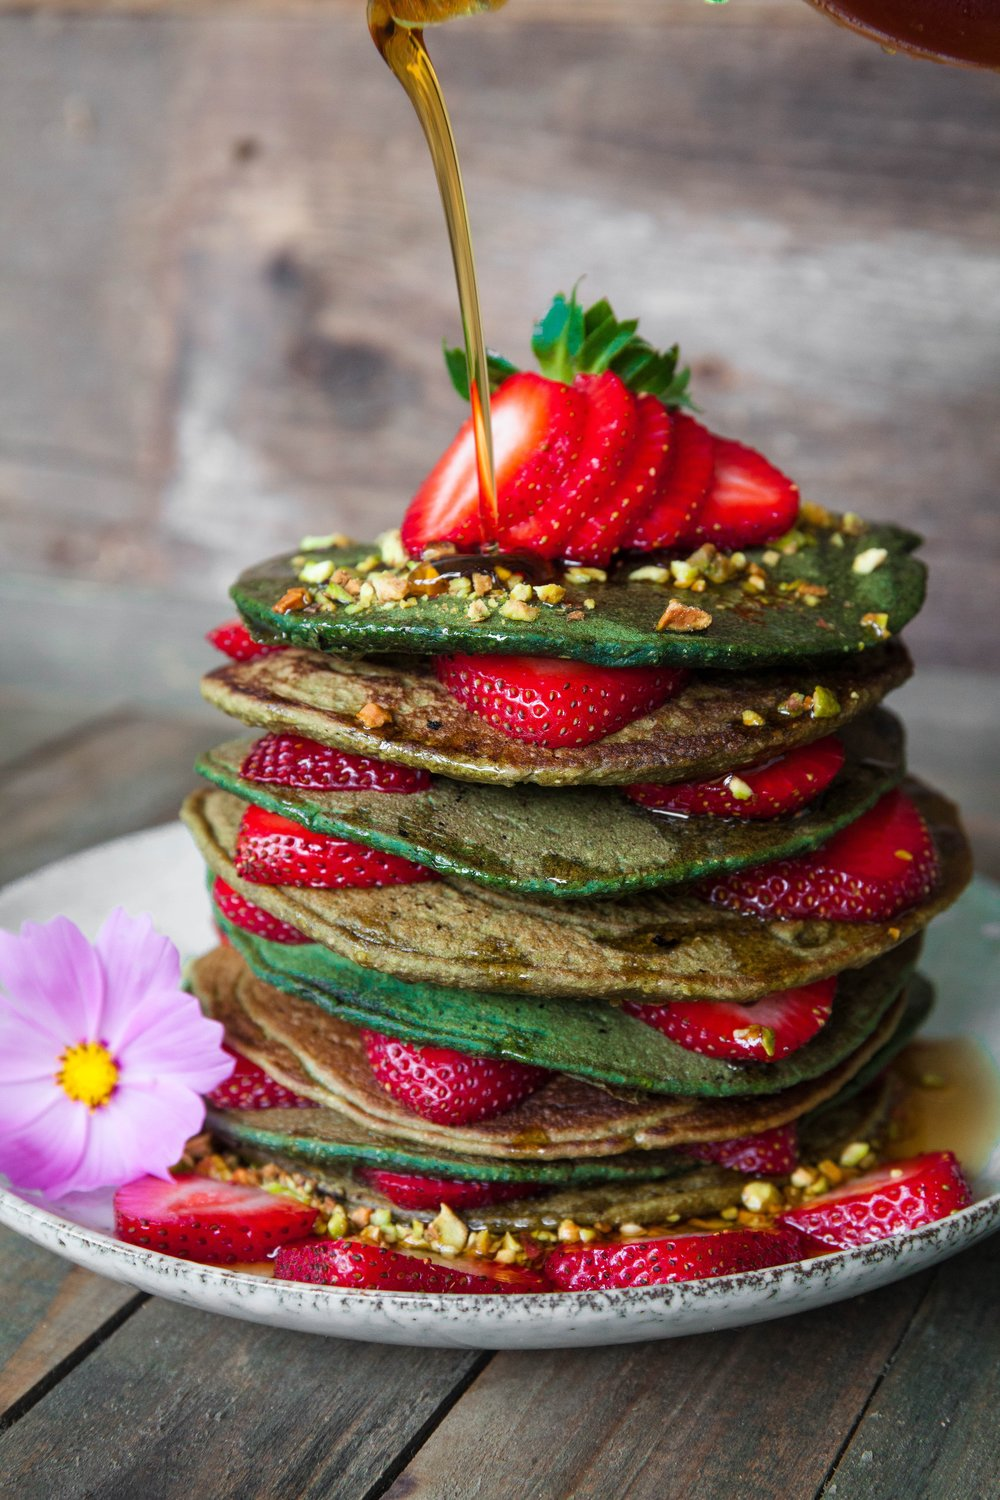 stack of matcha green tea pancakes with strawberries